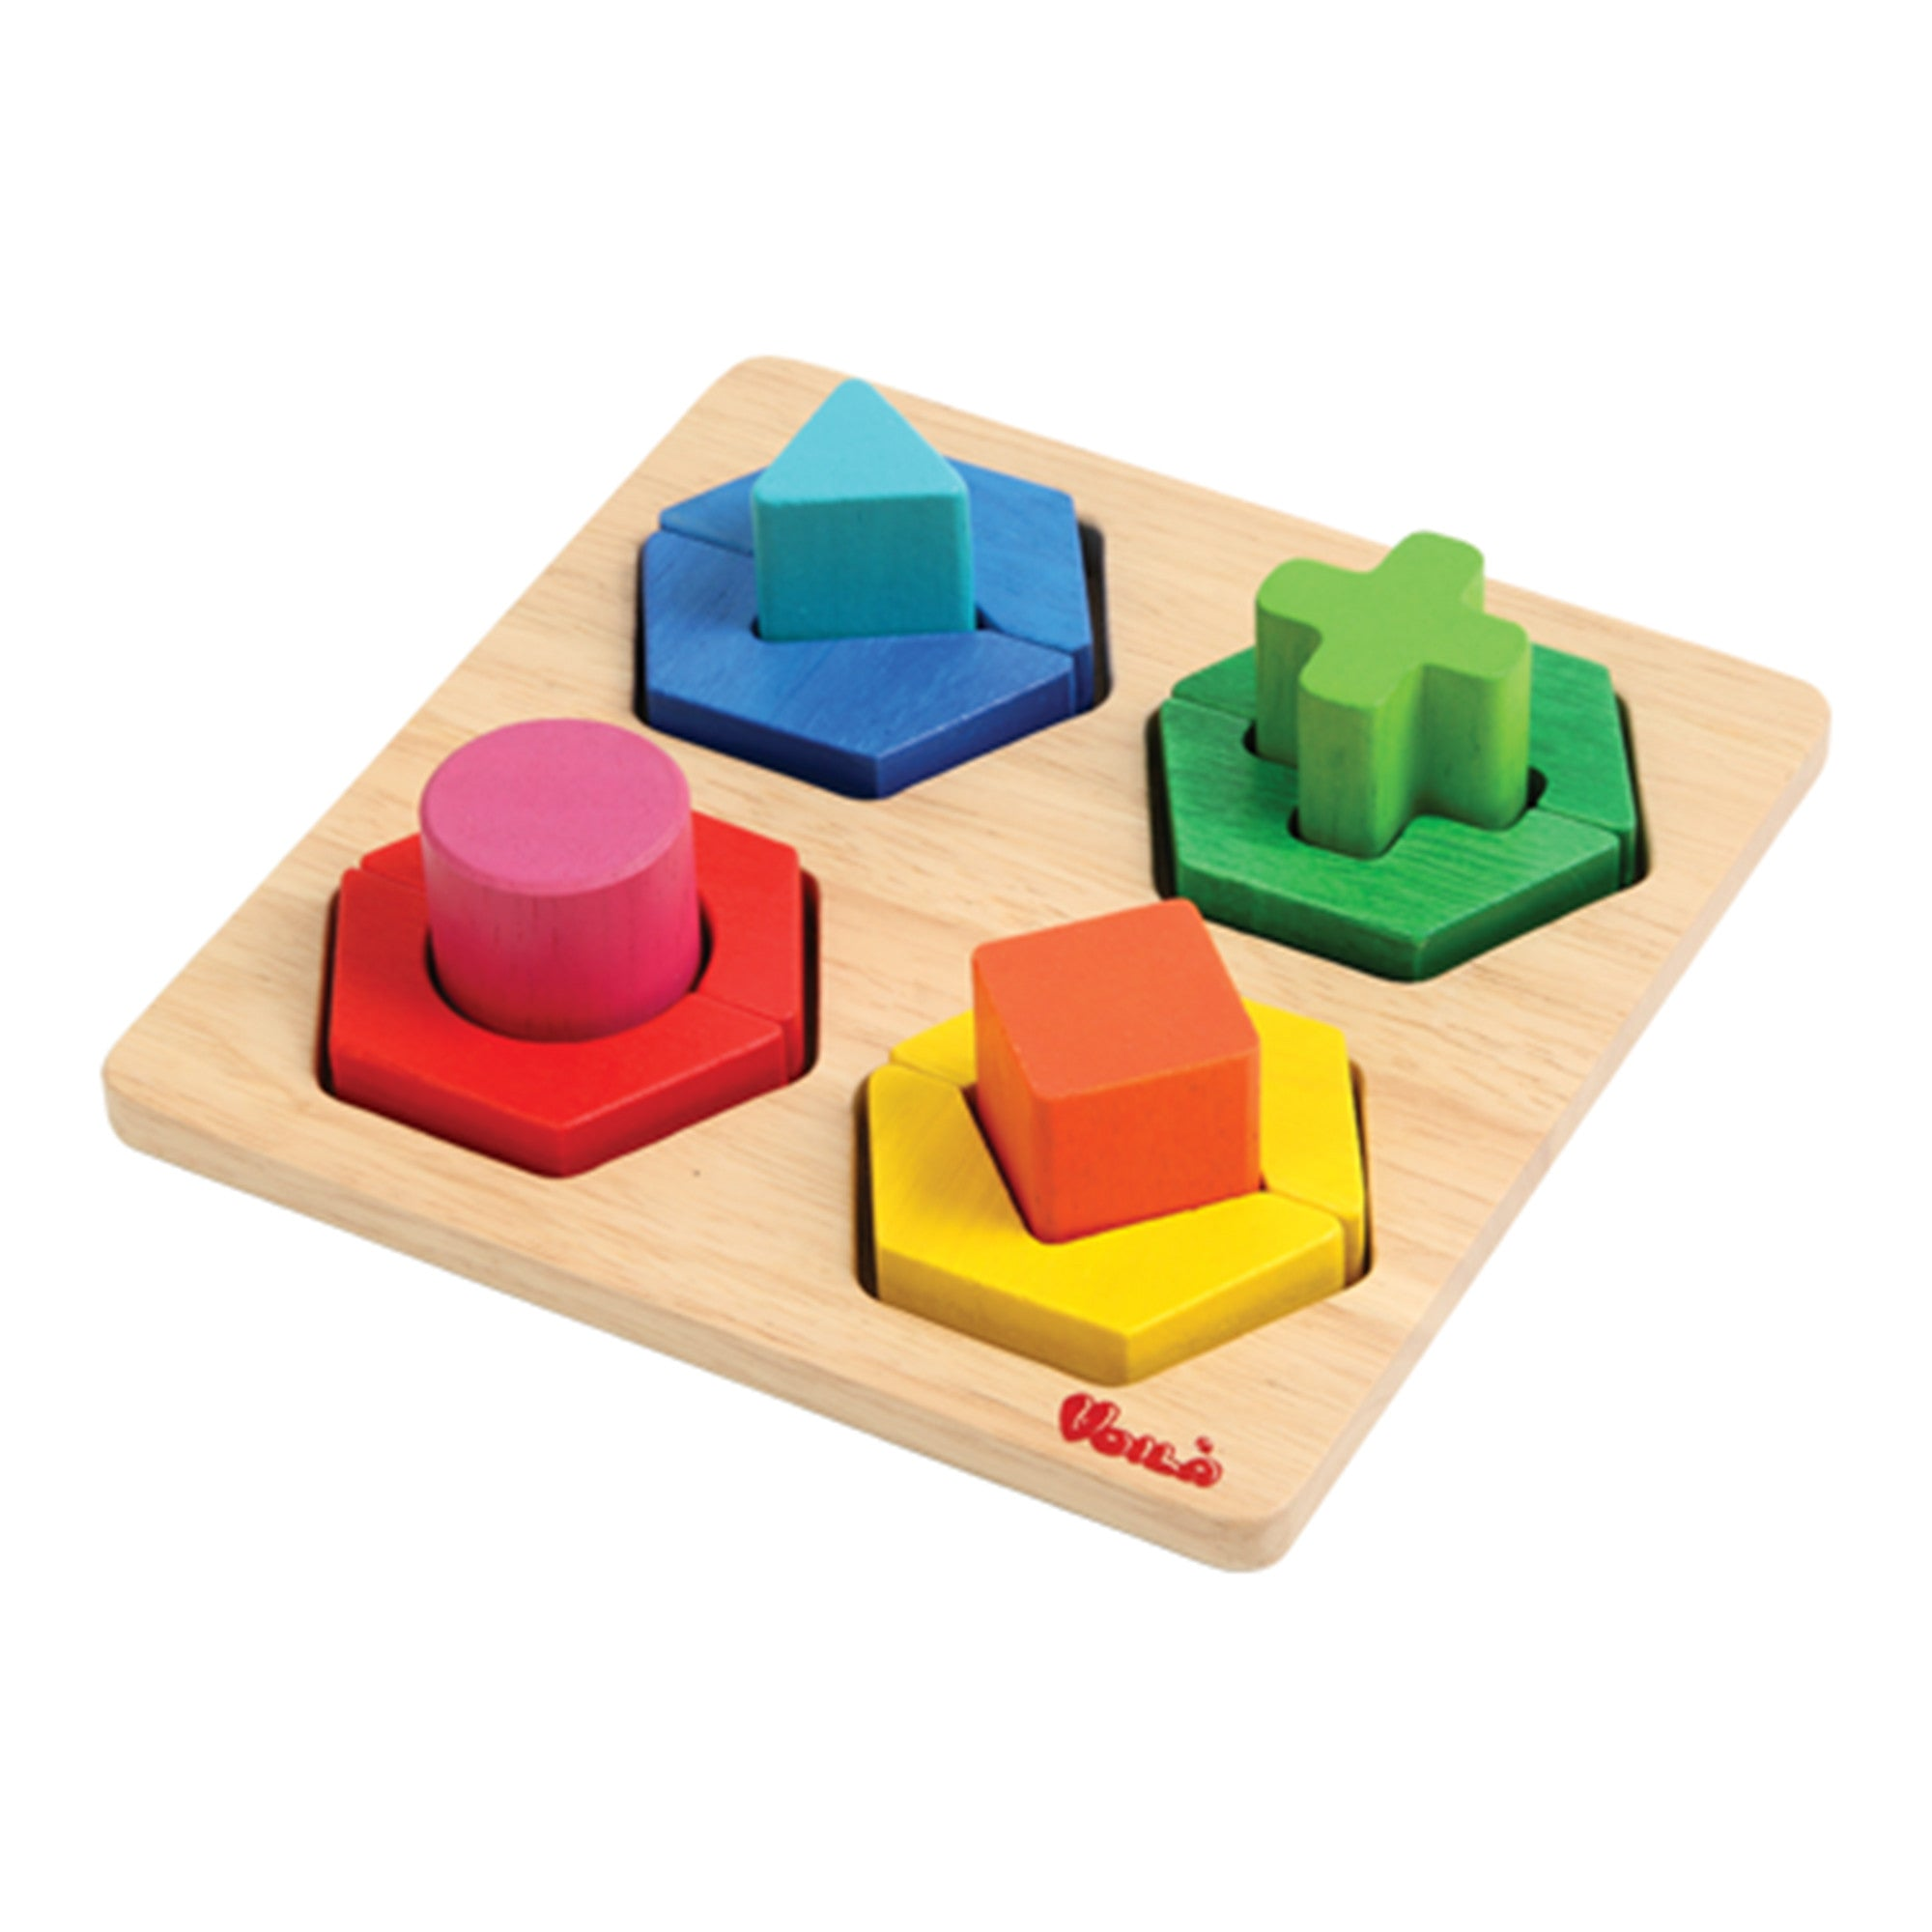 Wooden Rainbow Shapes Puzzle 'Fit Me In'   - Voila - Little Earth Nest - 1